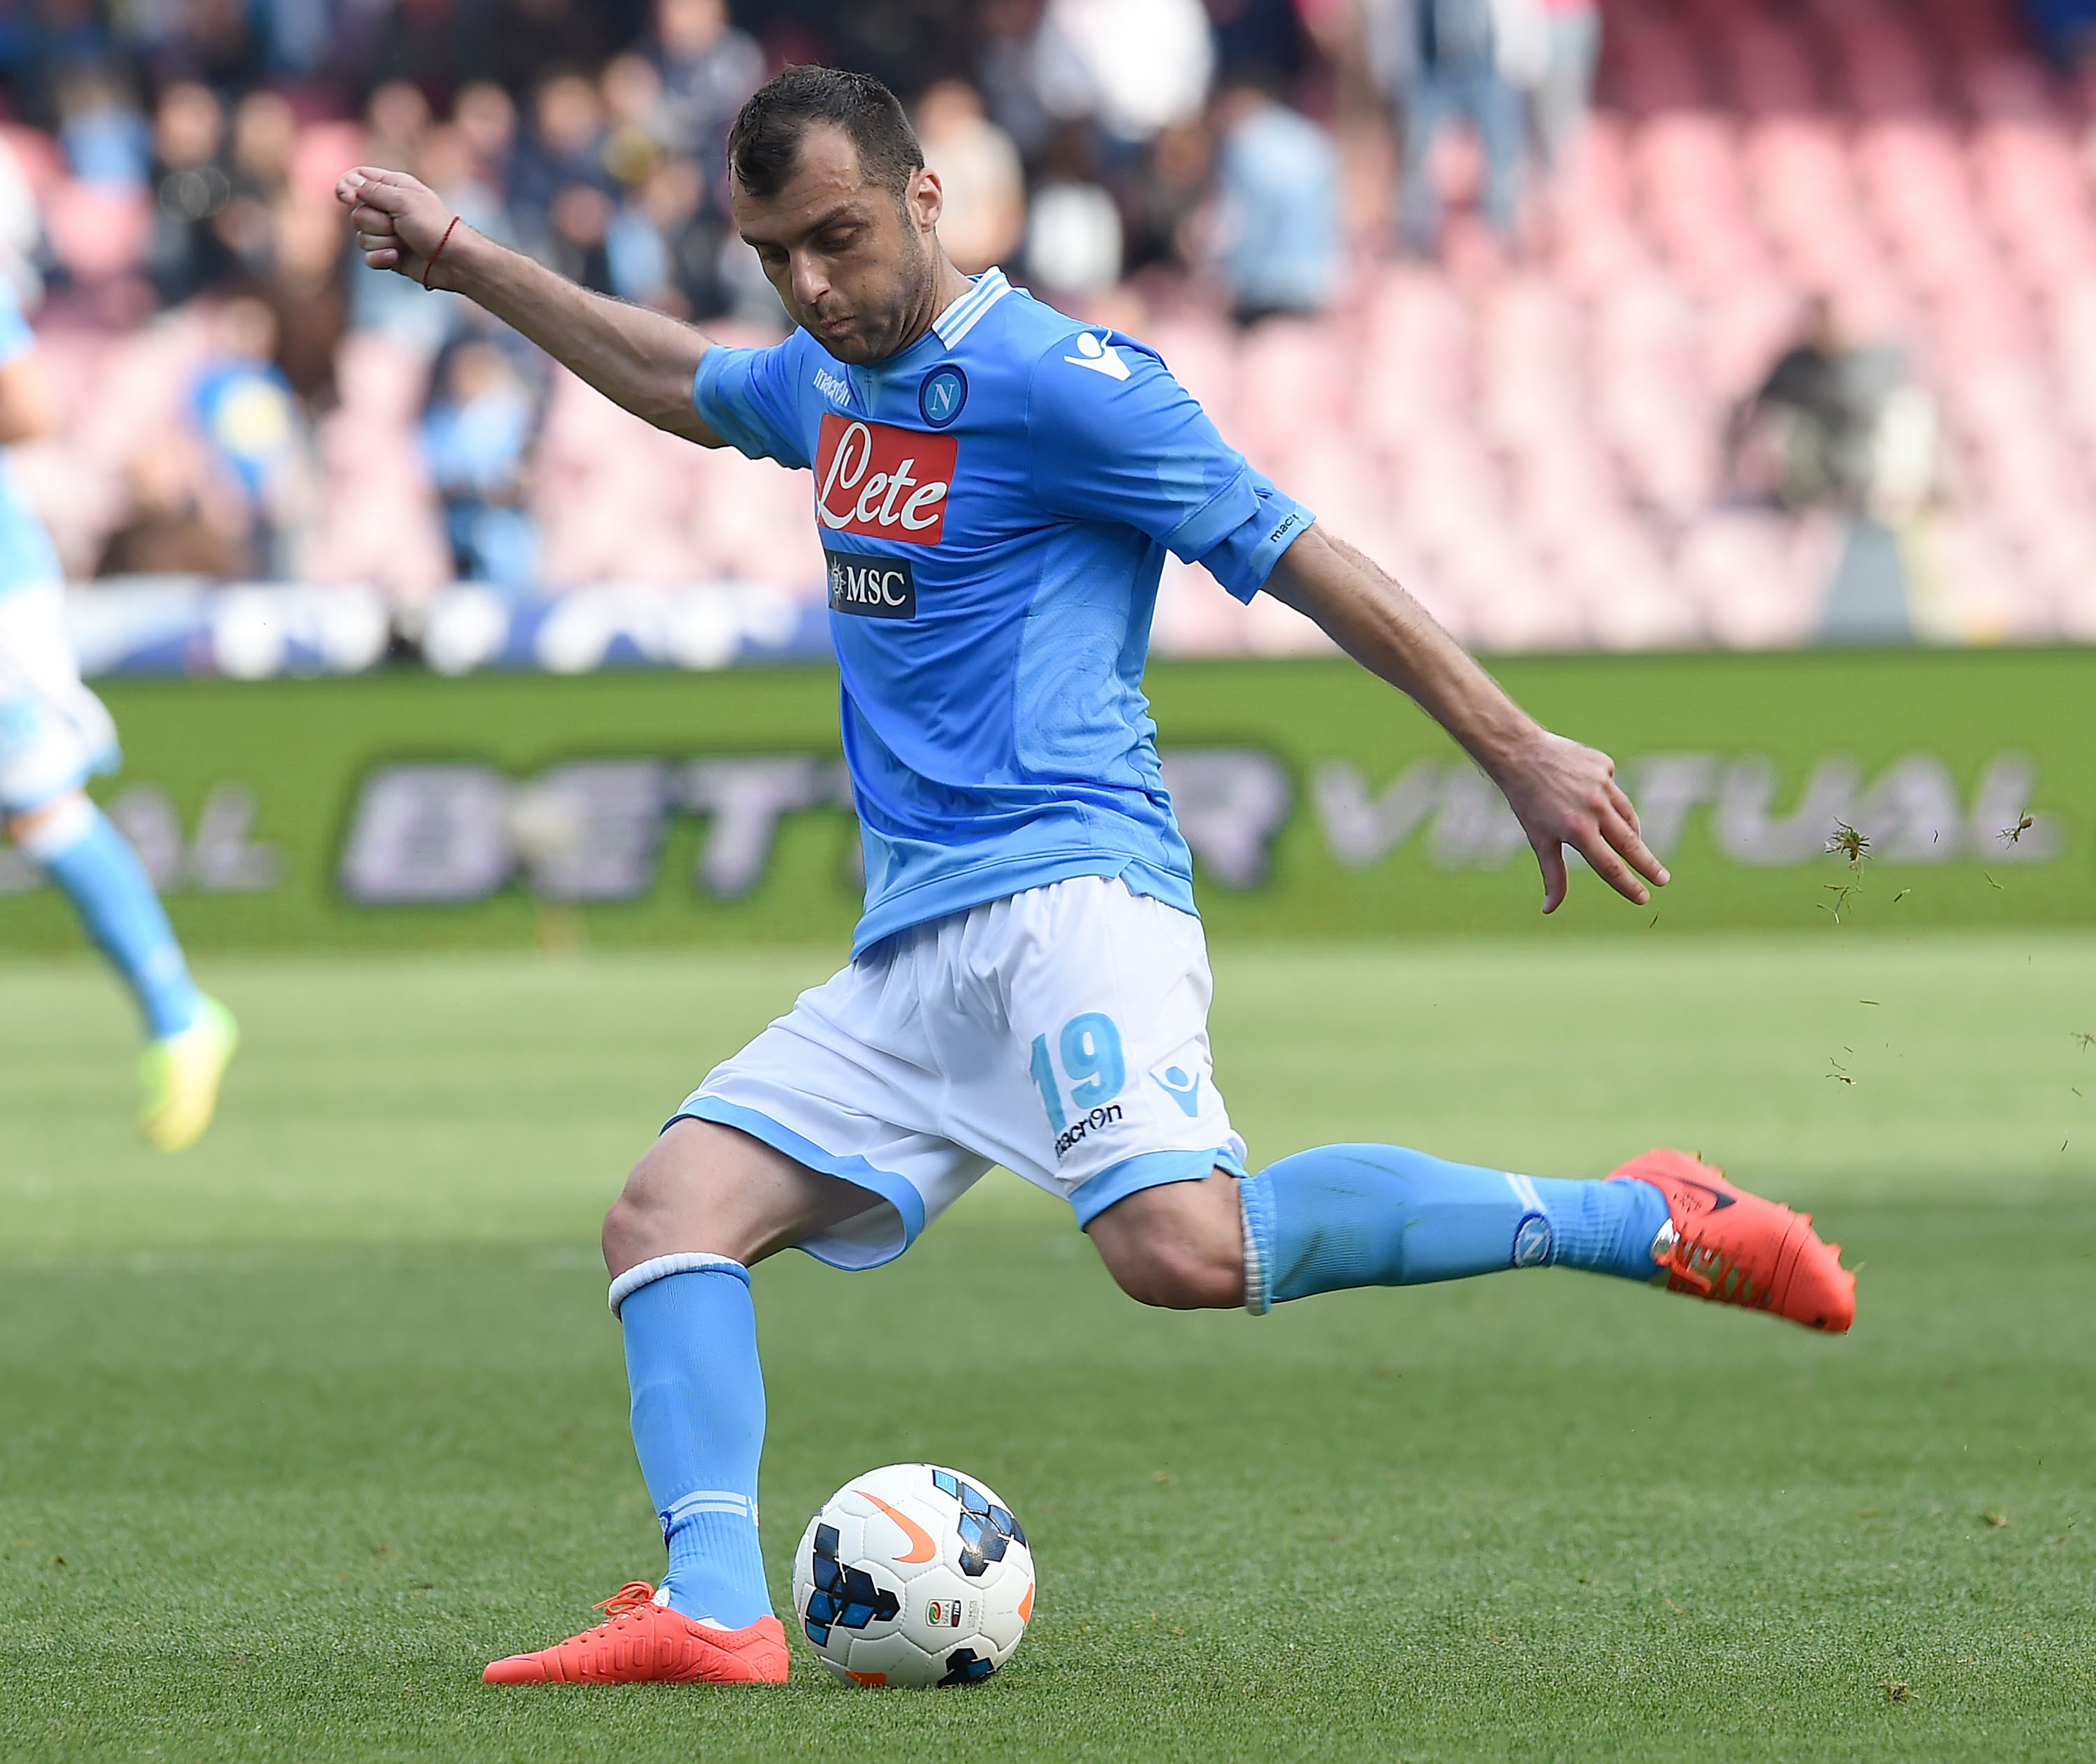 NAPLES, ITALY - APRIL 13: Goran Pandev of Napoli in action during the Serie A match between SSC Napoli and SS Lazio at Stadio San Paolo on April 13, 2014 in Naples, Italy. (Photo by Giuseppe Bellini/Getty Images)